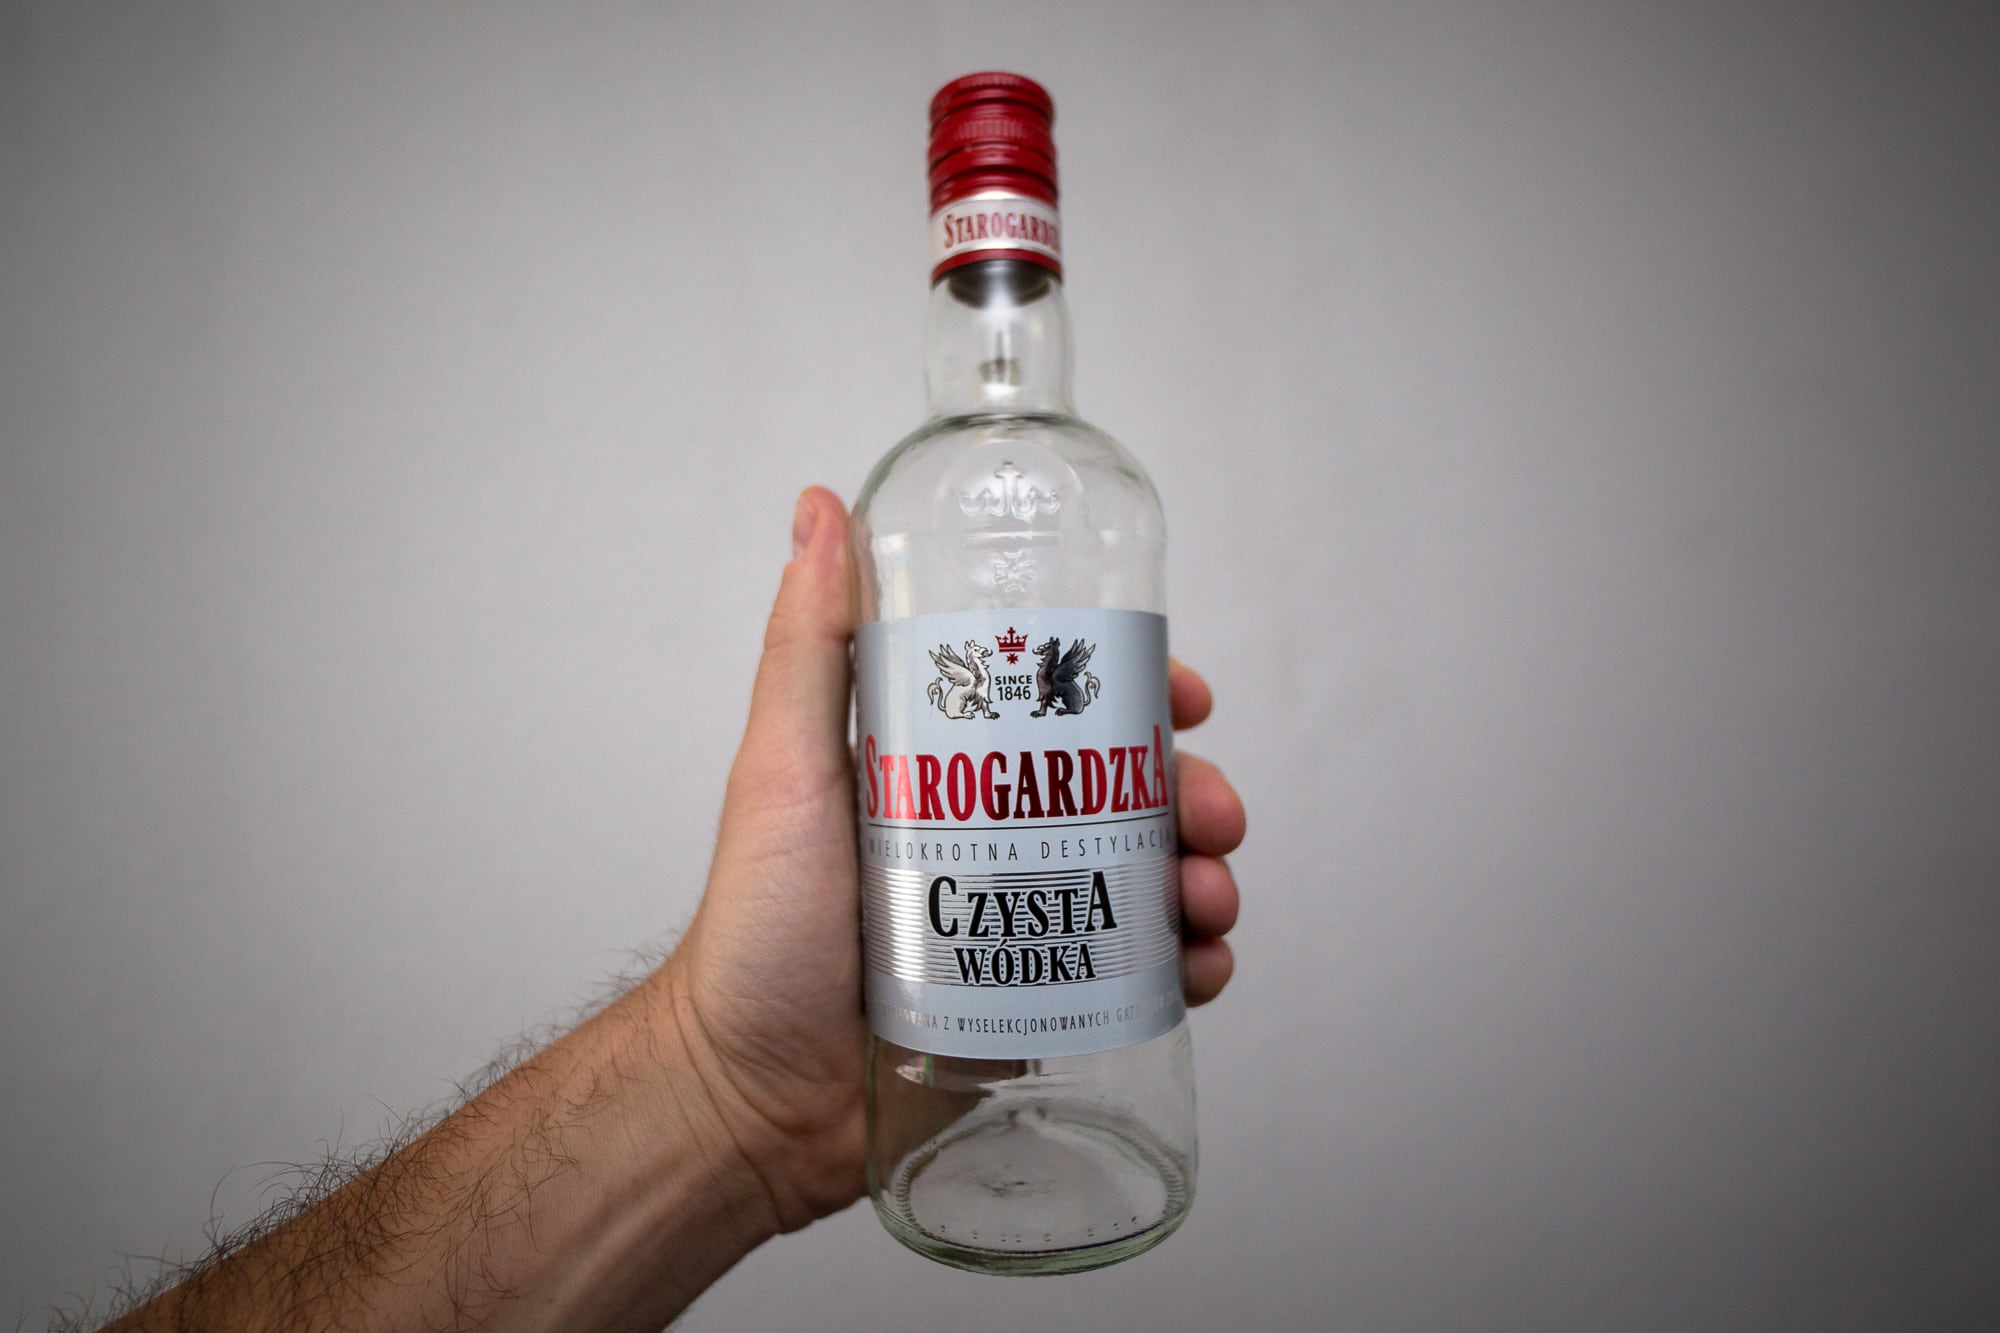 Starogardzka vodka